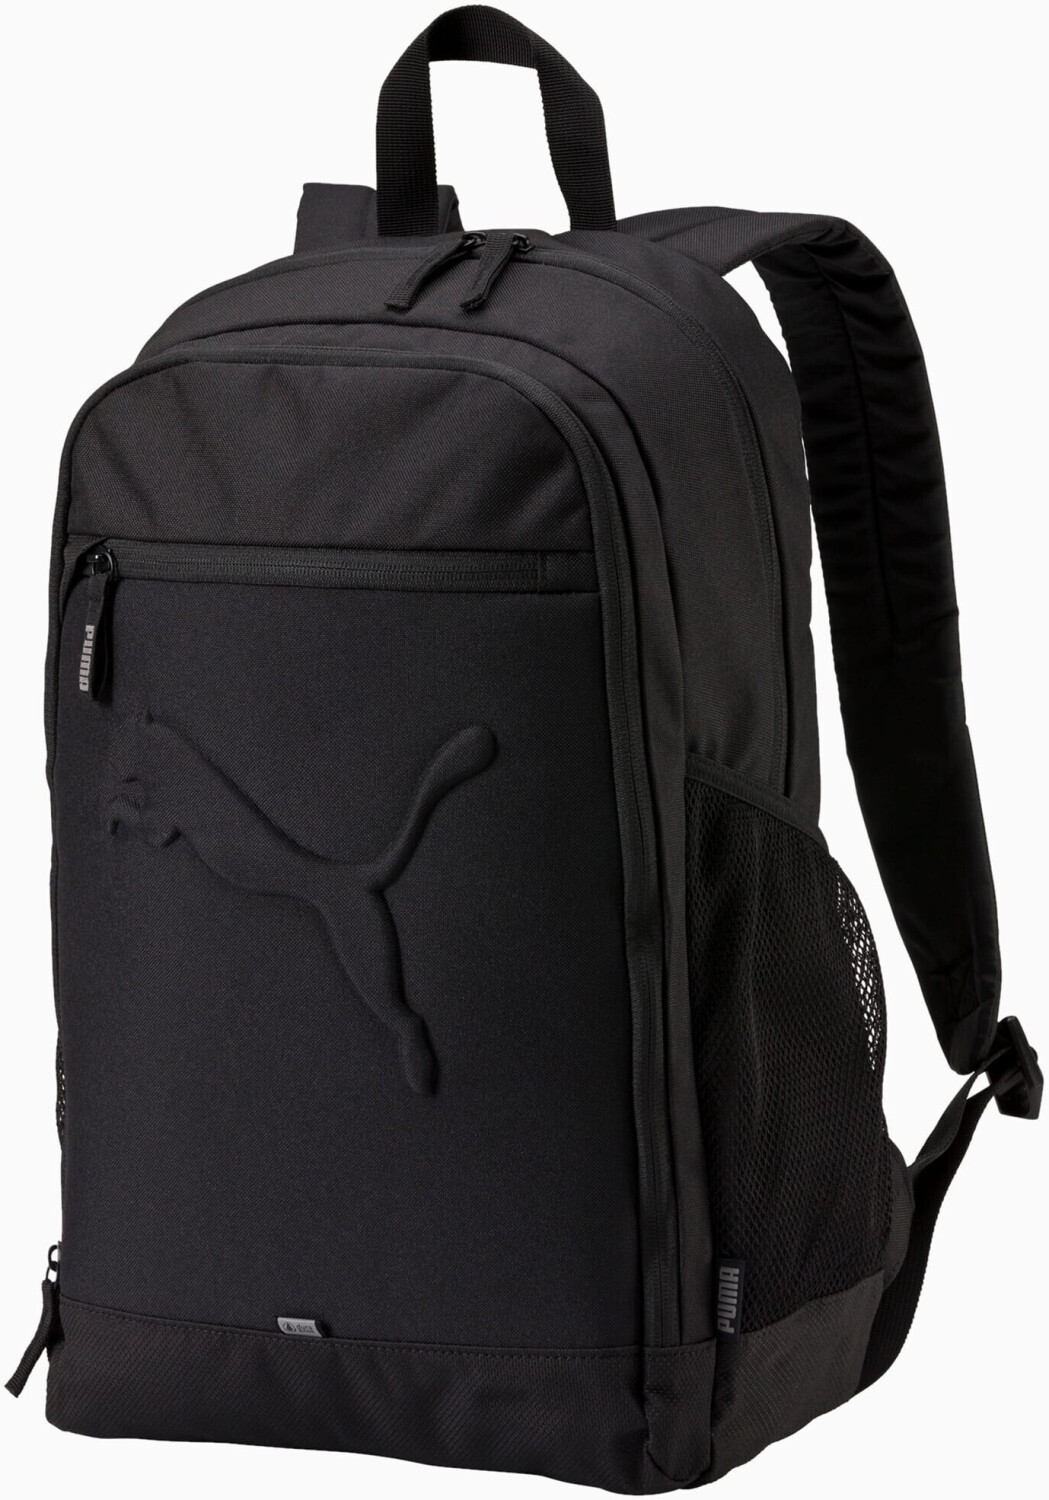 Puma Sports Buzz Backpack (73581)